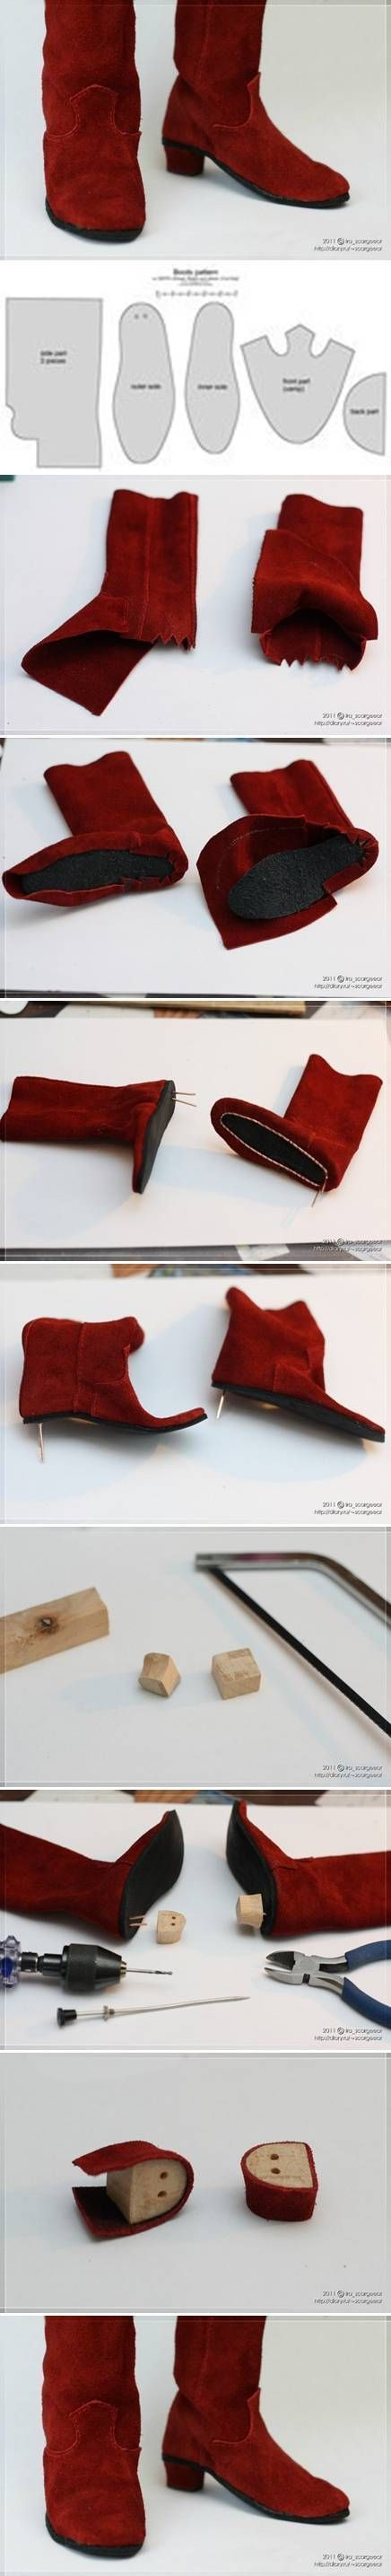 How to make Doll Boot step by step DIY tutorial instructions / How To Instructions